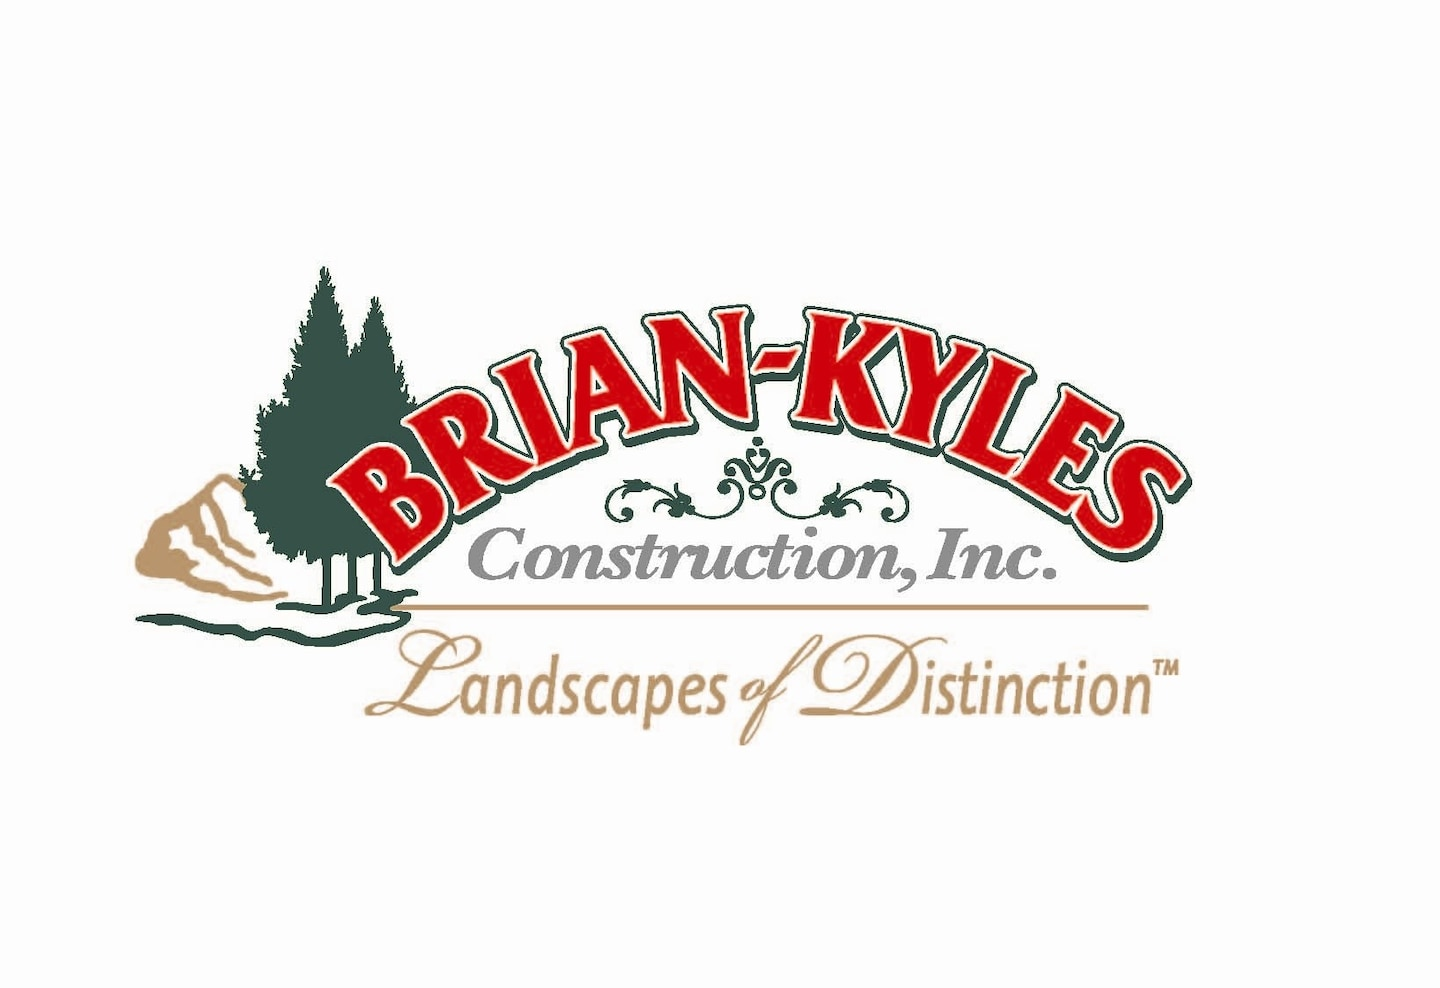 Brian-Kyles Landscapes of Distinction